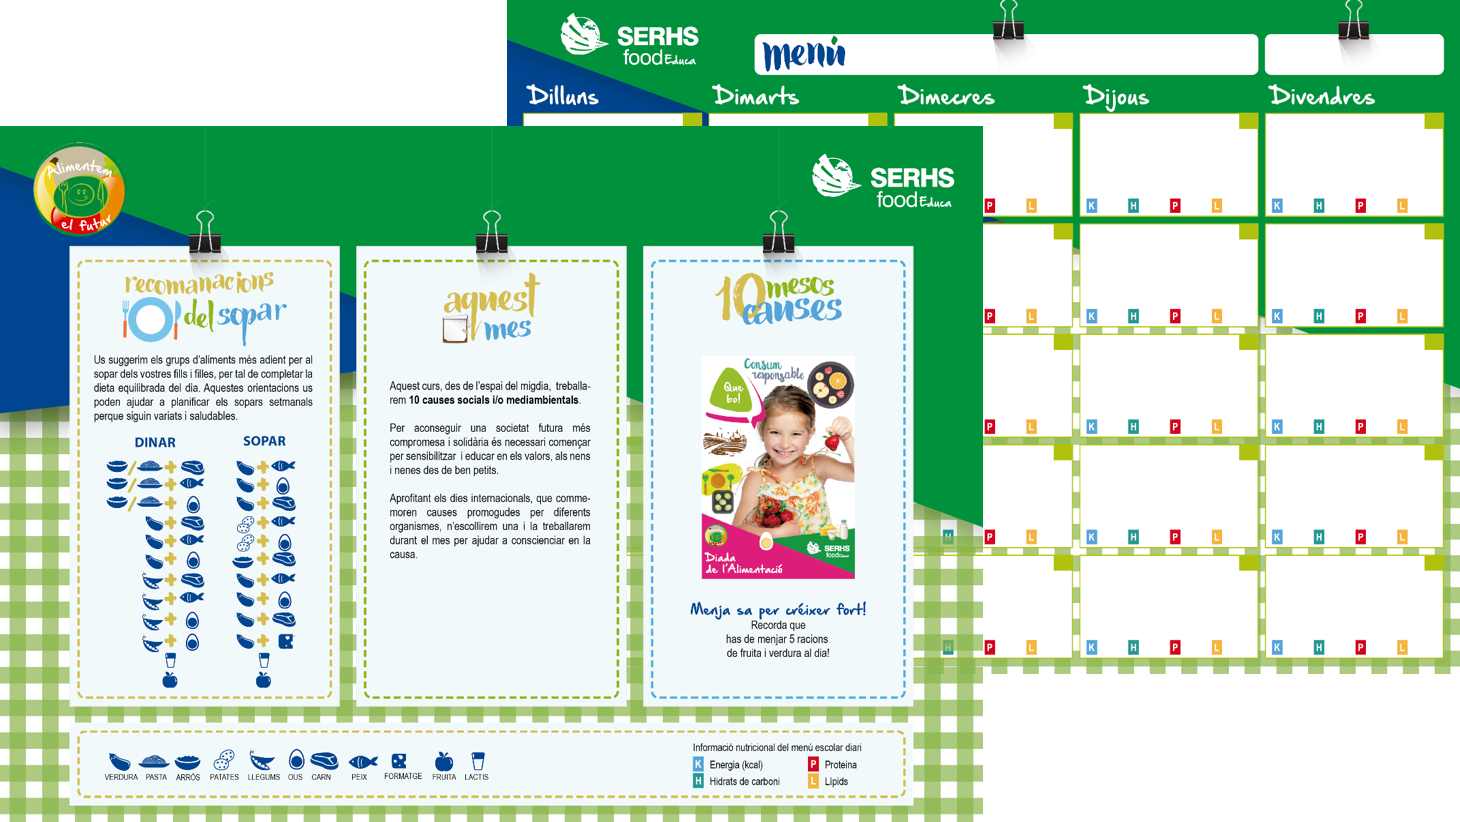 menus saludables a serhs food educa